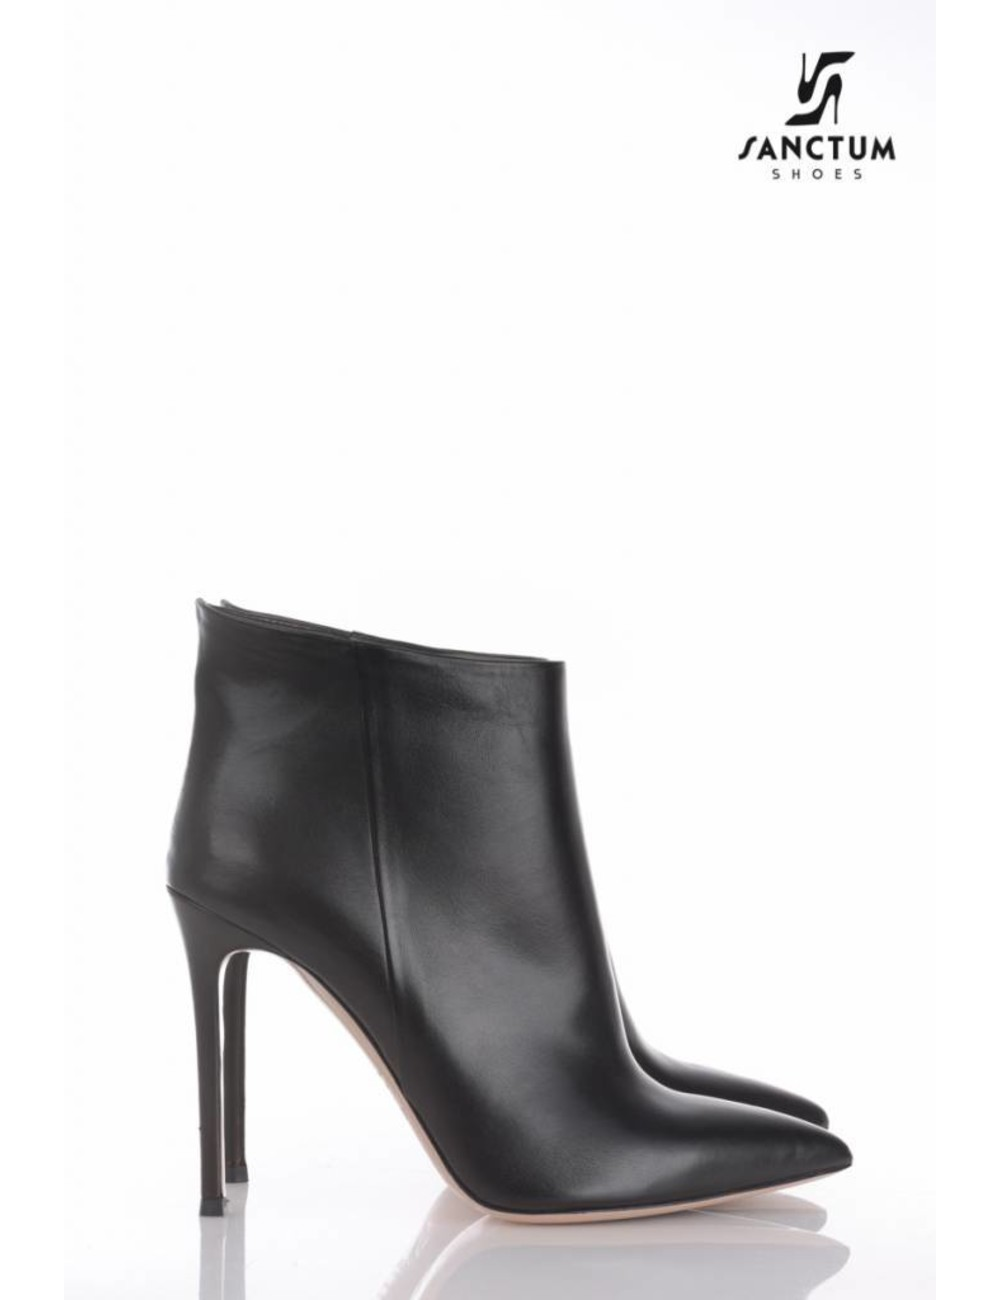 Sanctum Italian ankle boots with thin heels -OUTLET